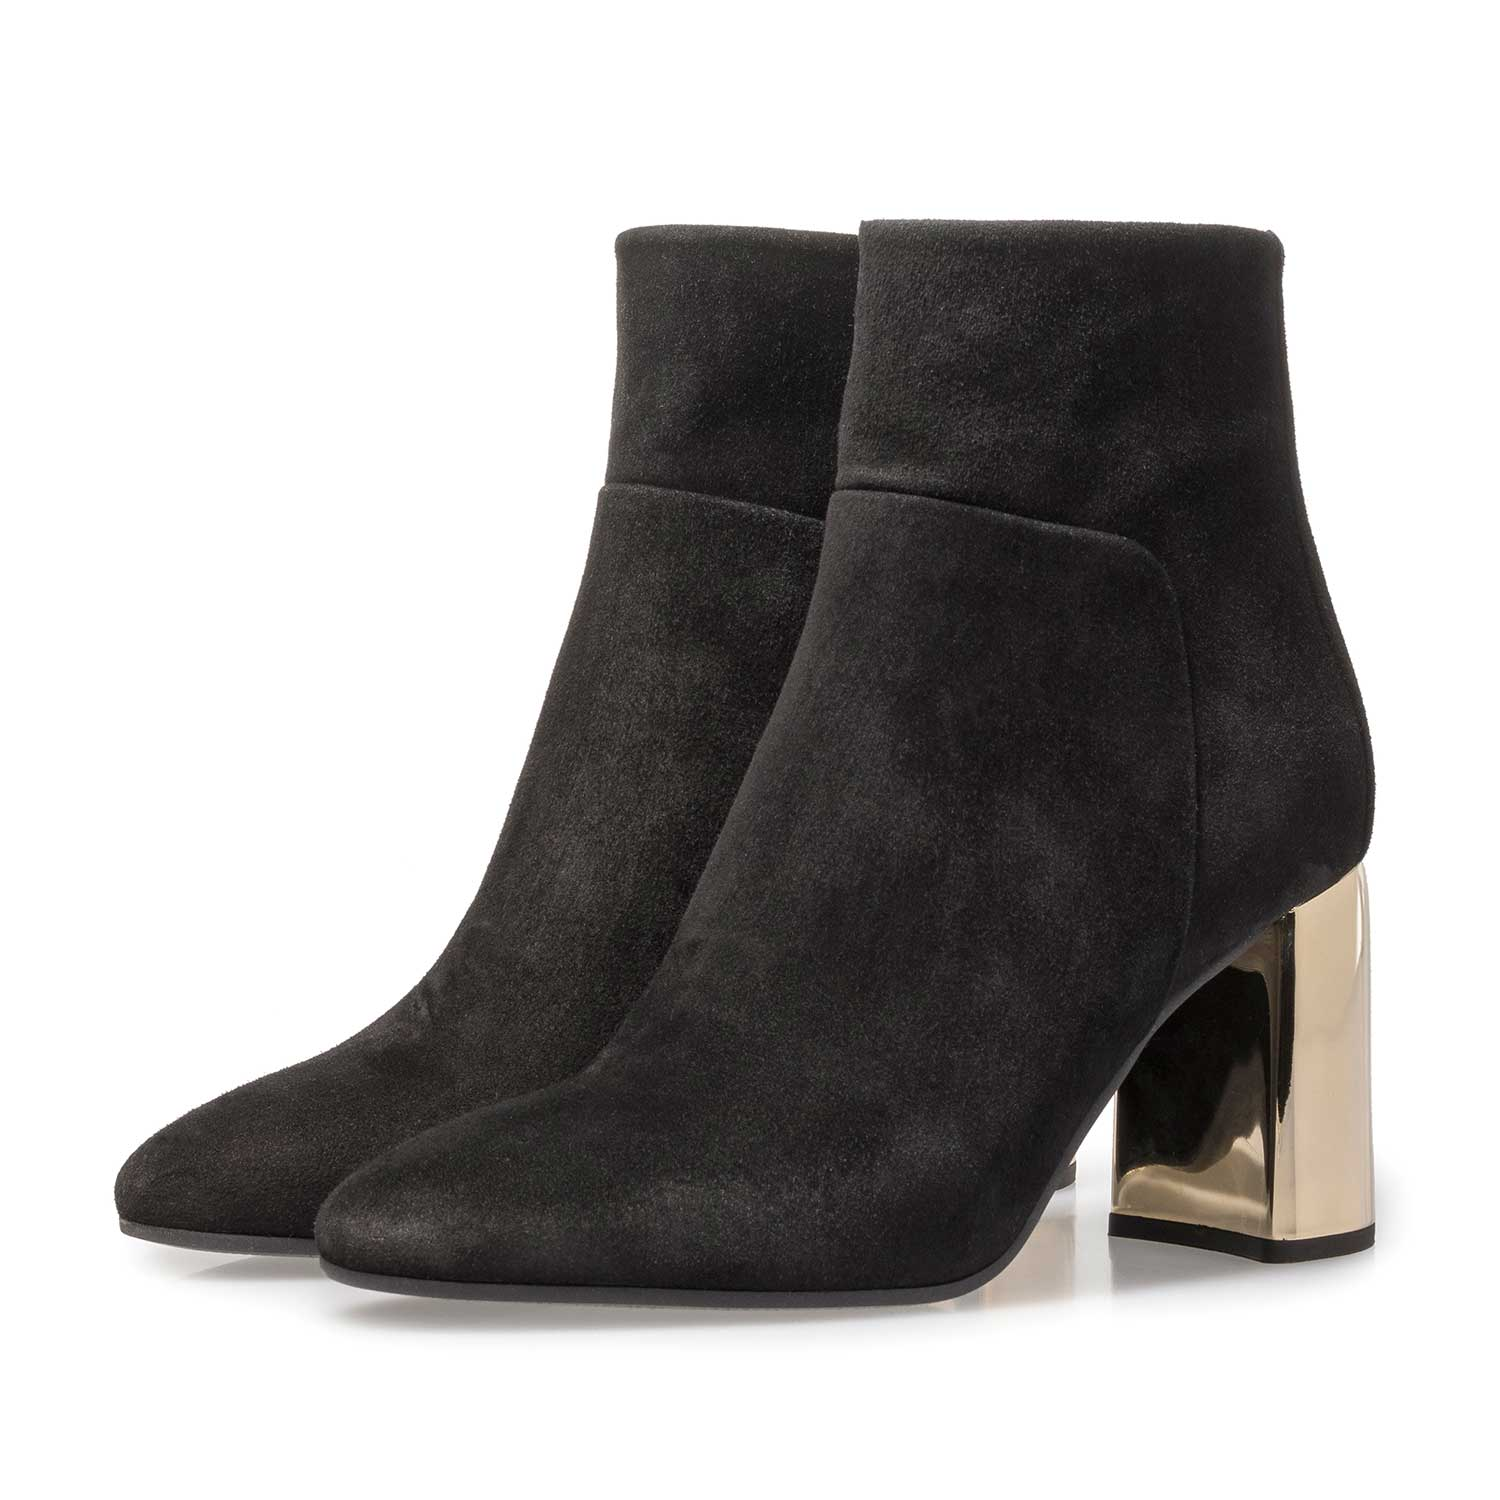 85624/00 - Black suede ankle boot